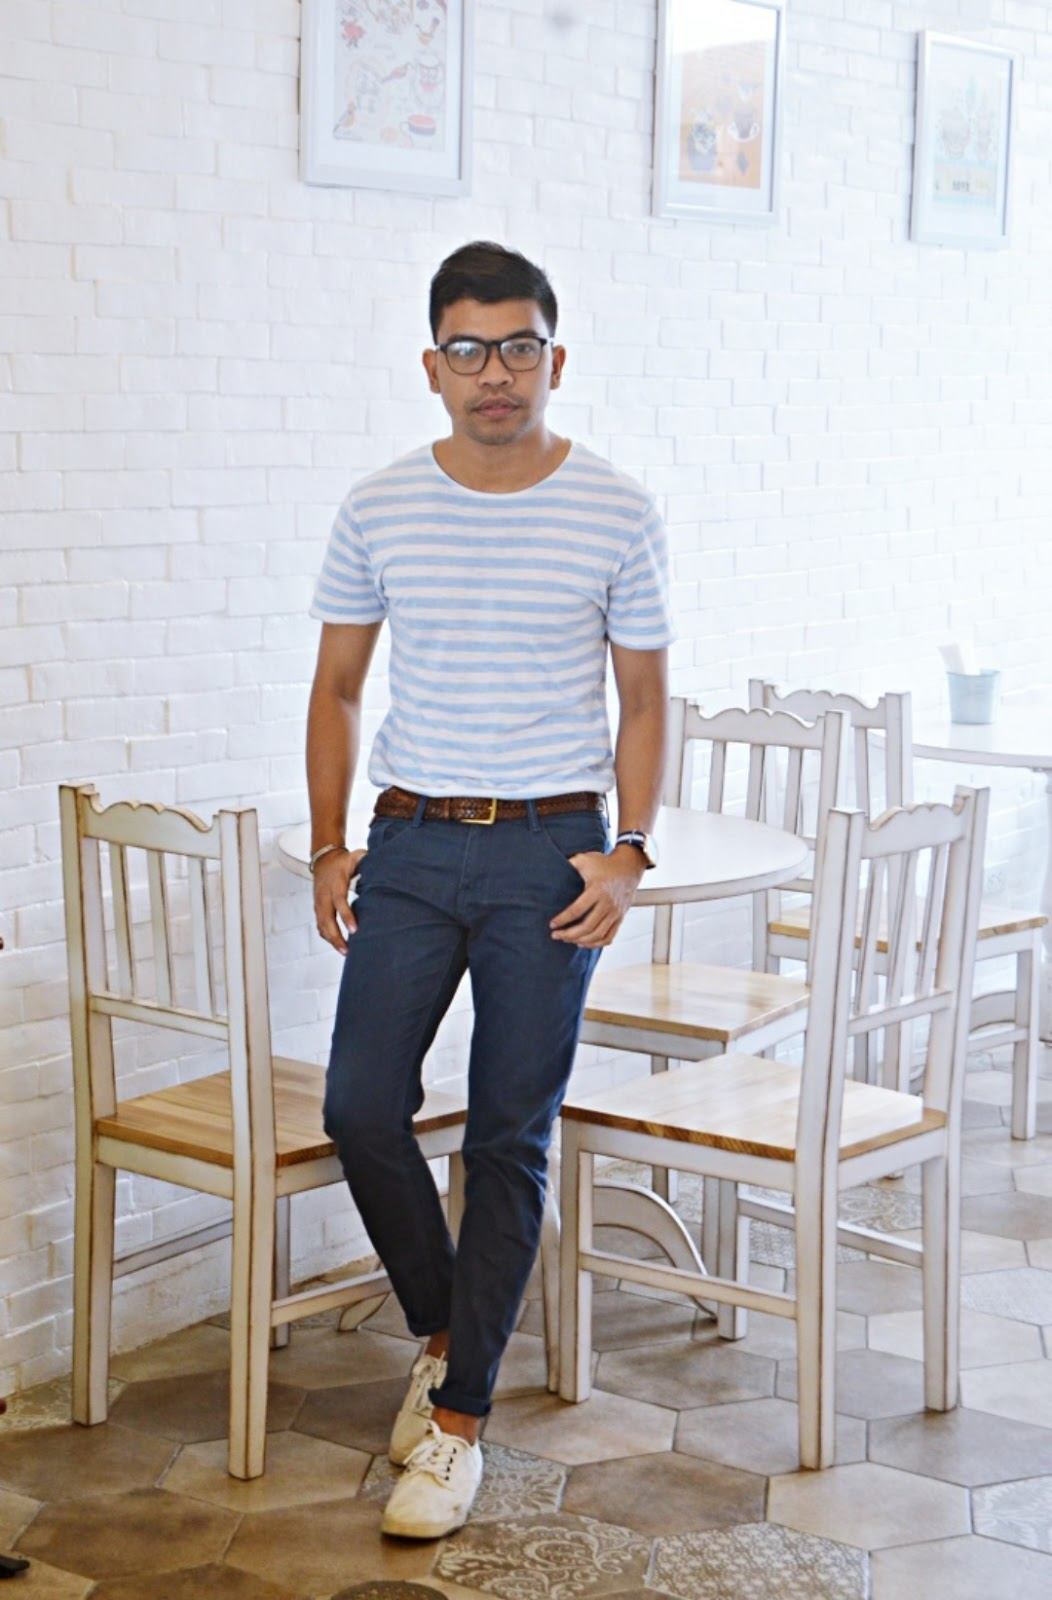 10dove-street-top-cebu-male-fashion-blogger-almostablogger.jpg